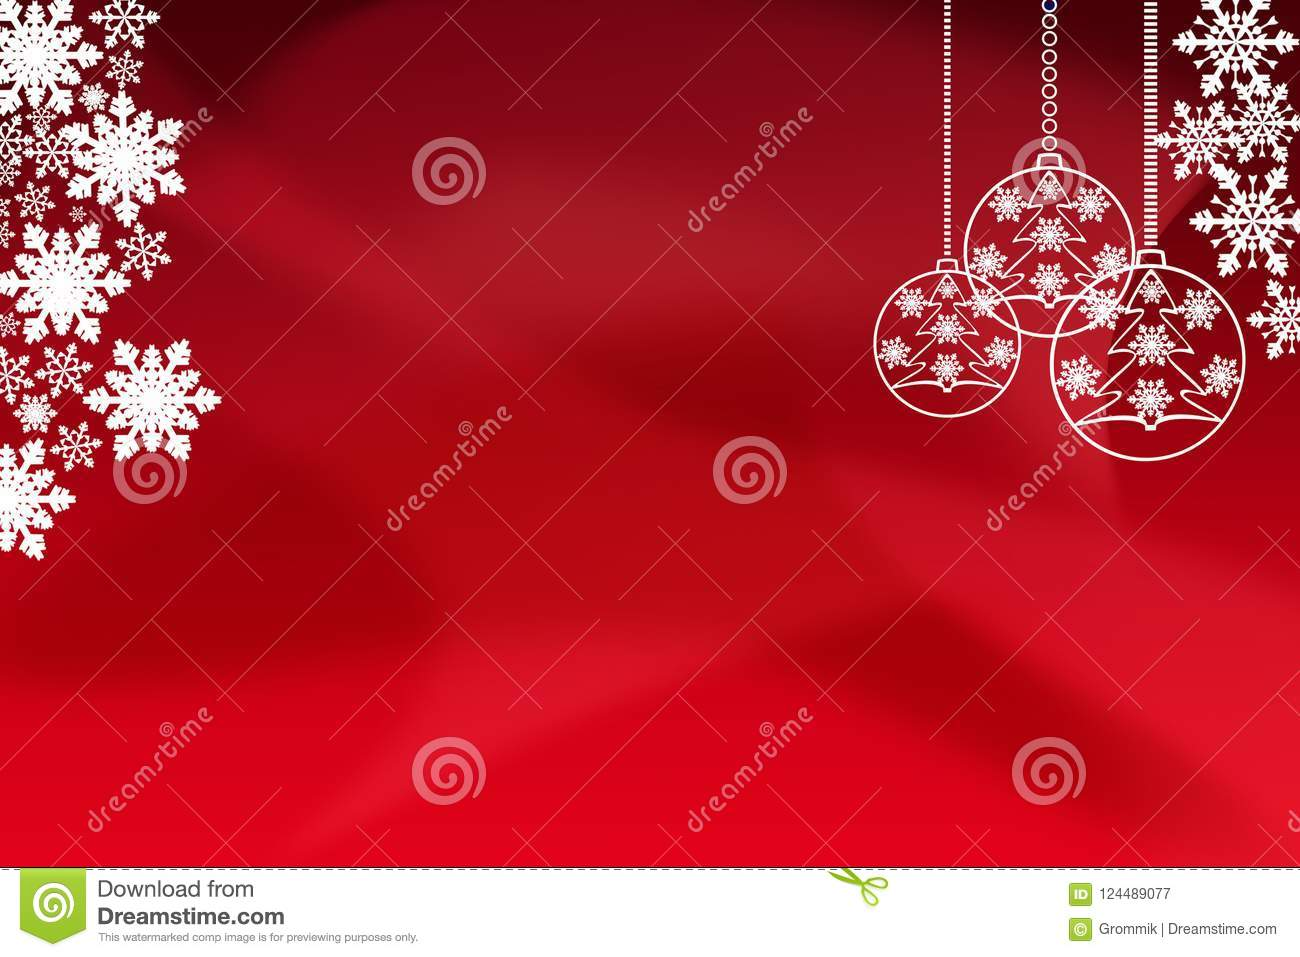 new year background screensaver for new year and christmas gree